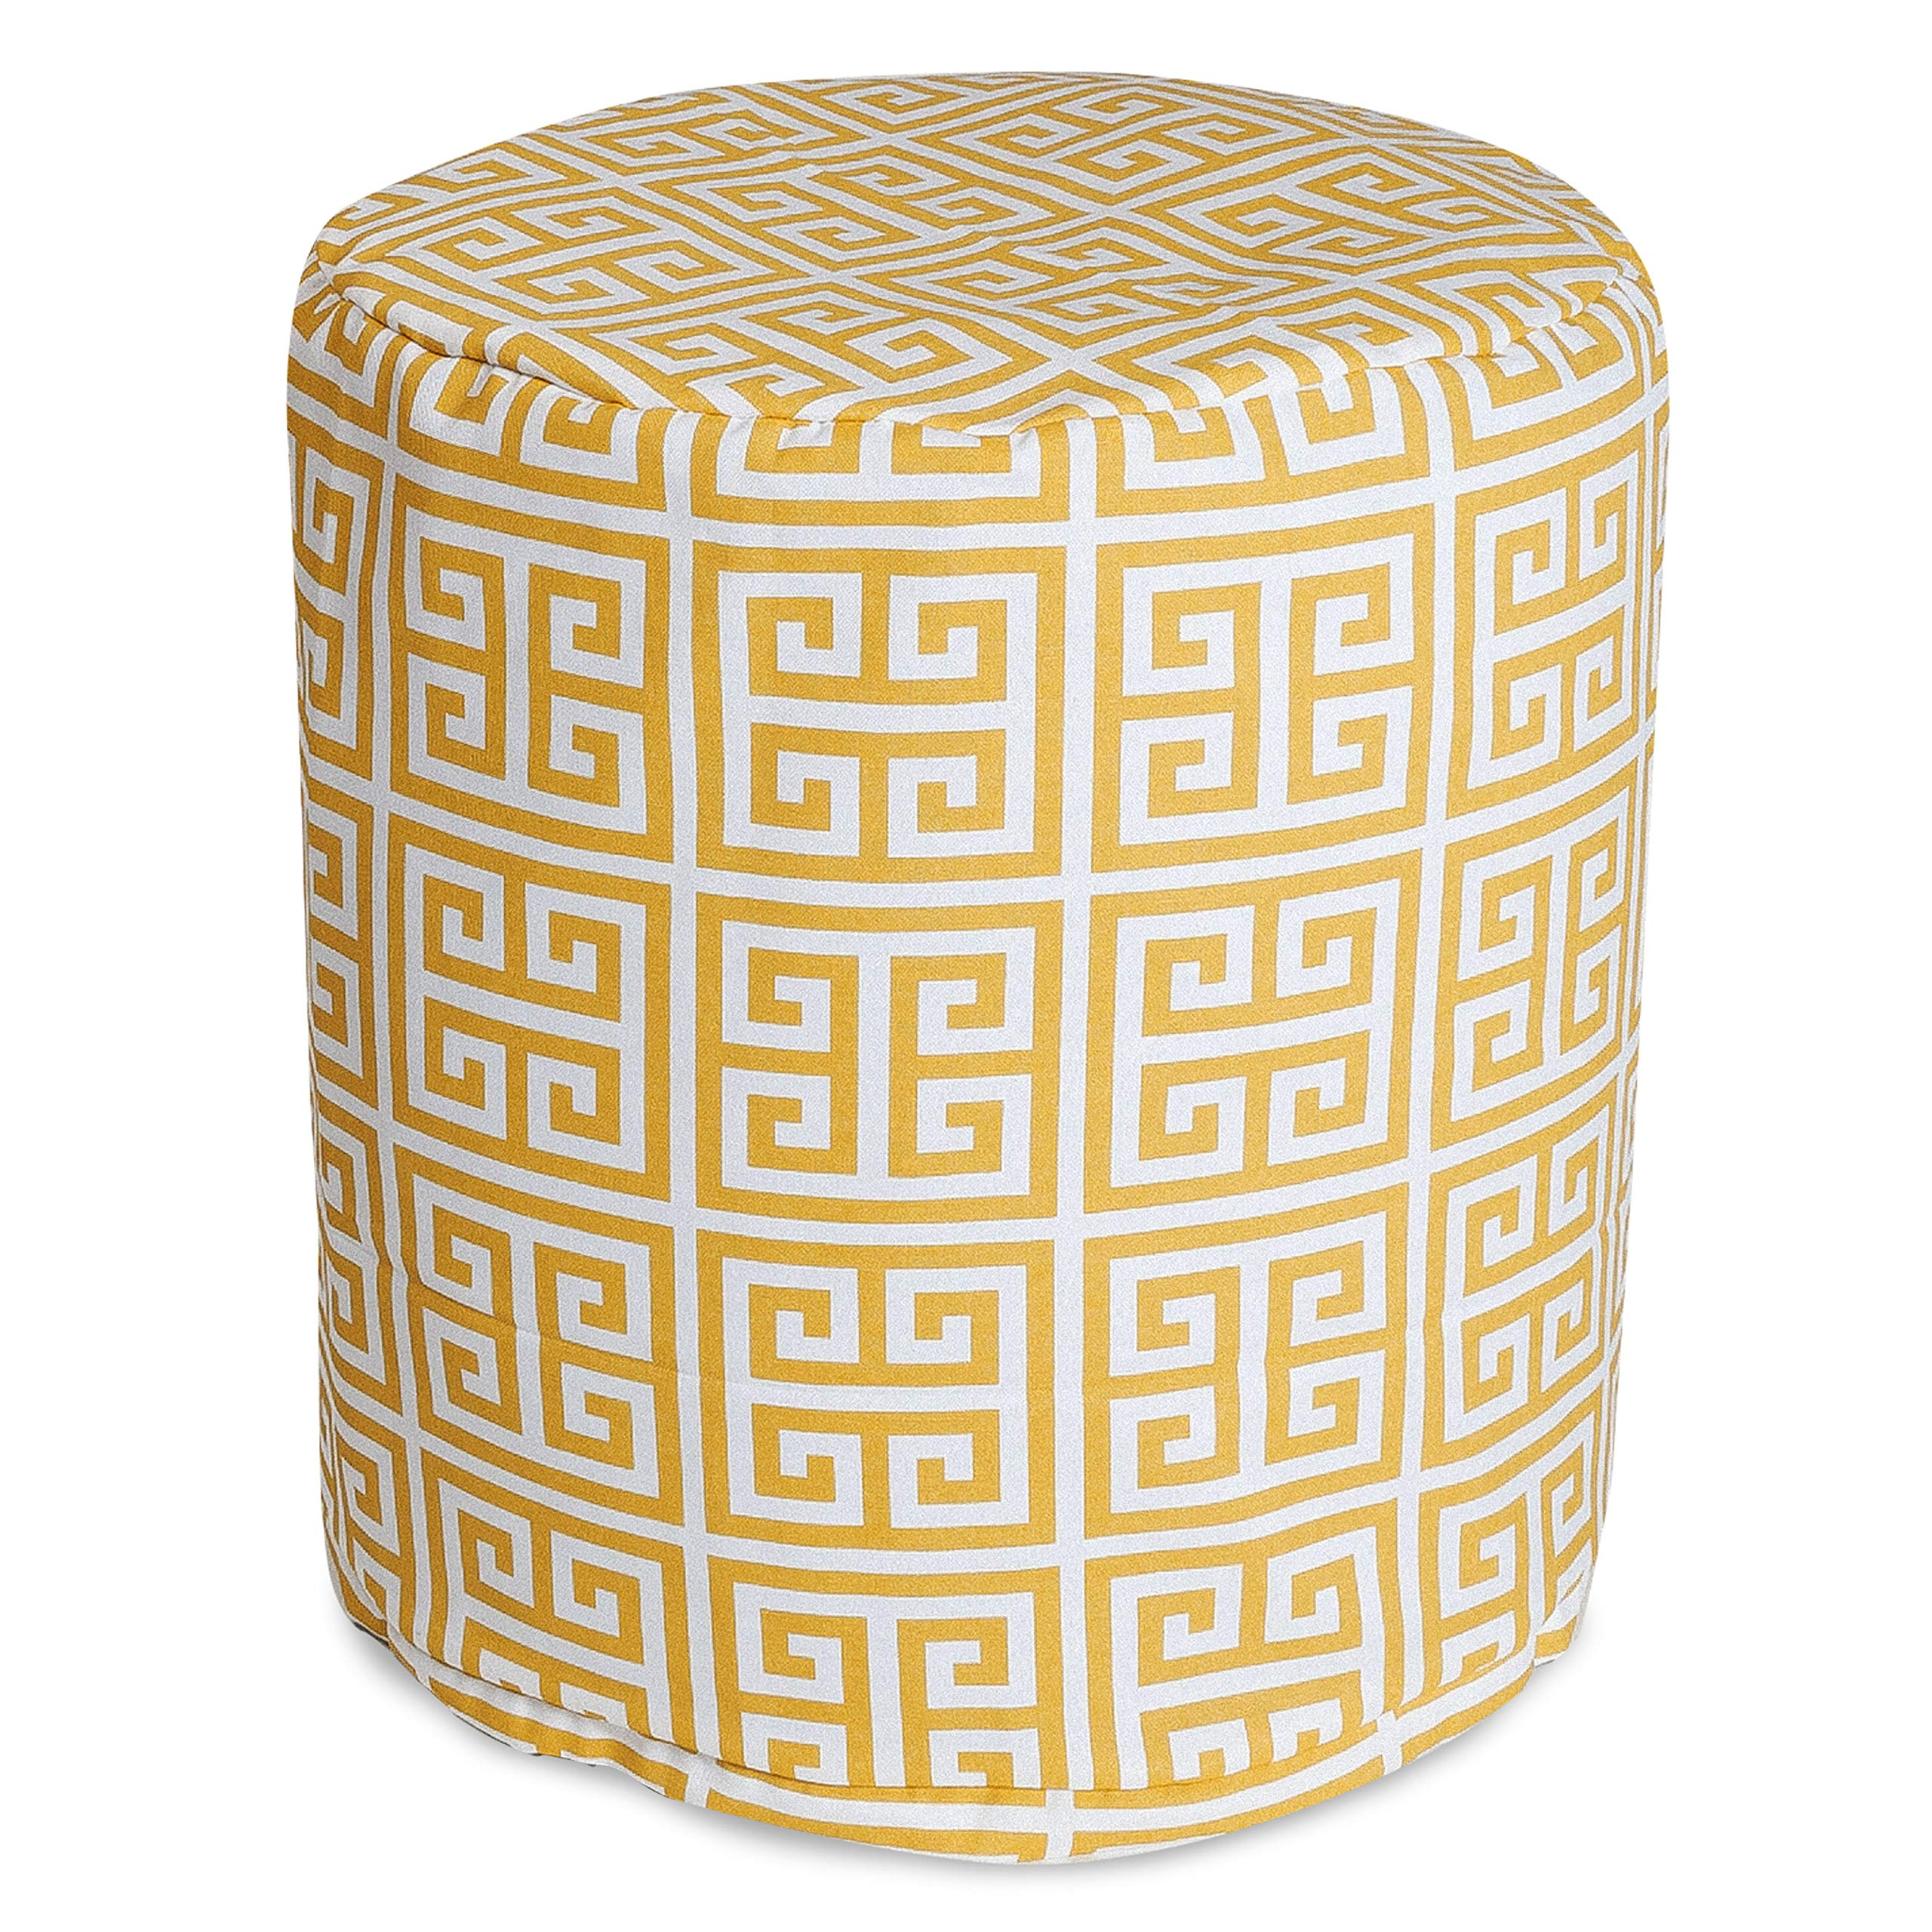 Majestic Home Goods Citrus Towers Indoor/Outdoor Bean Bag Ottoman Pouf 16'' L x 16'' W x 17'' H